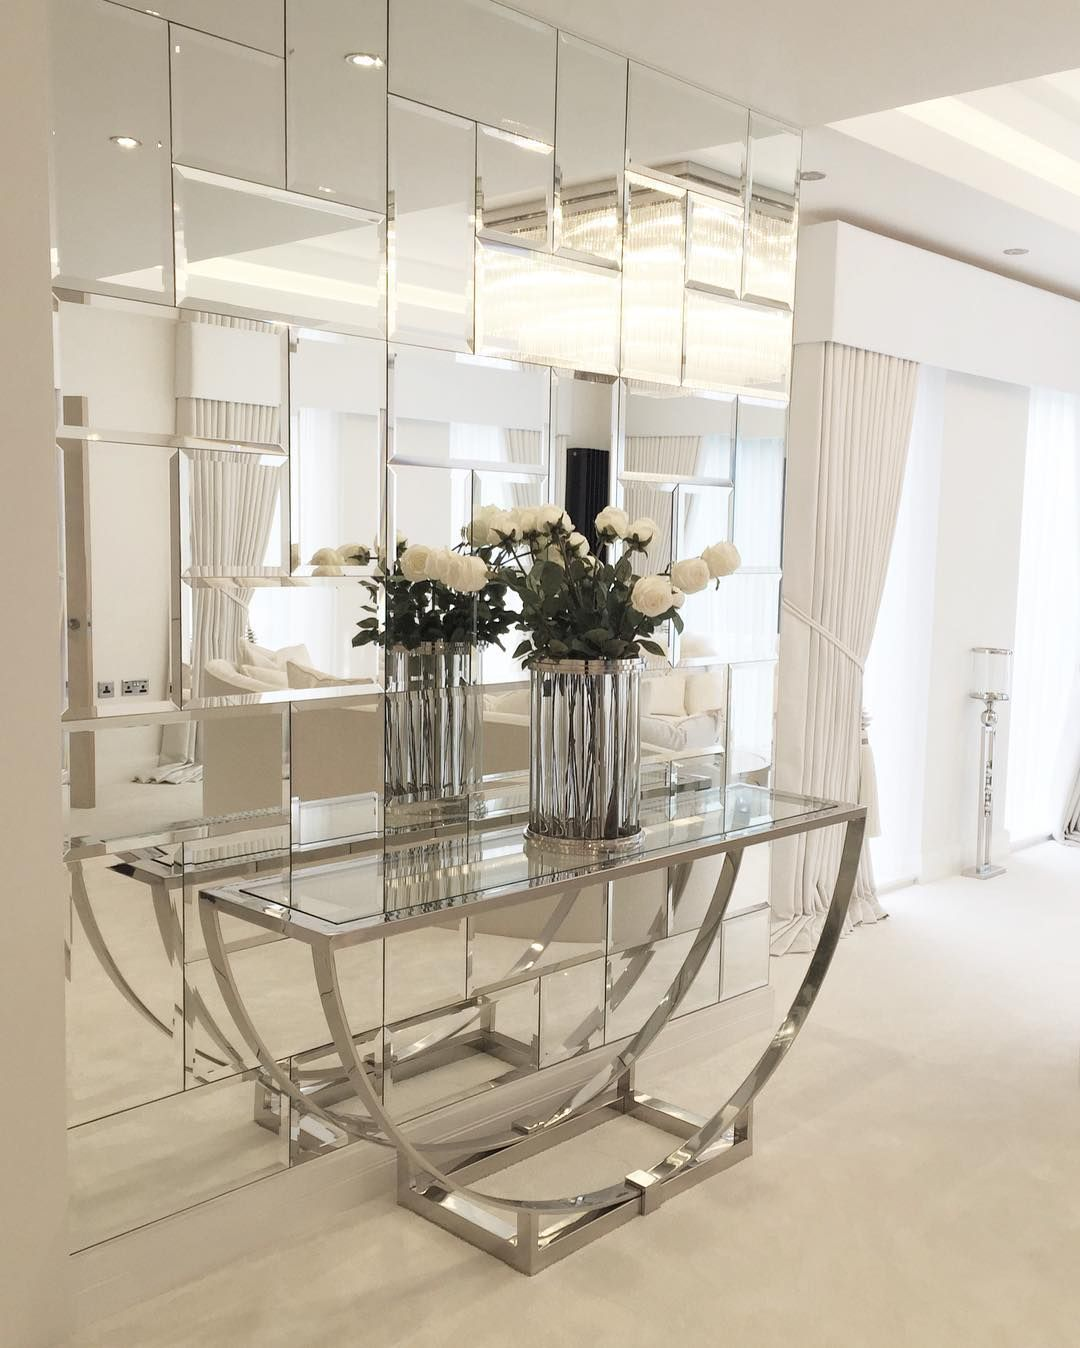 Pin by mya may on my interests pinterest salons hallway designs